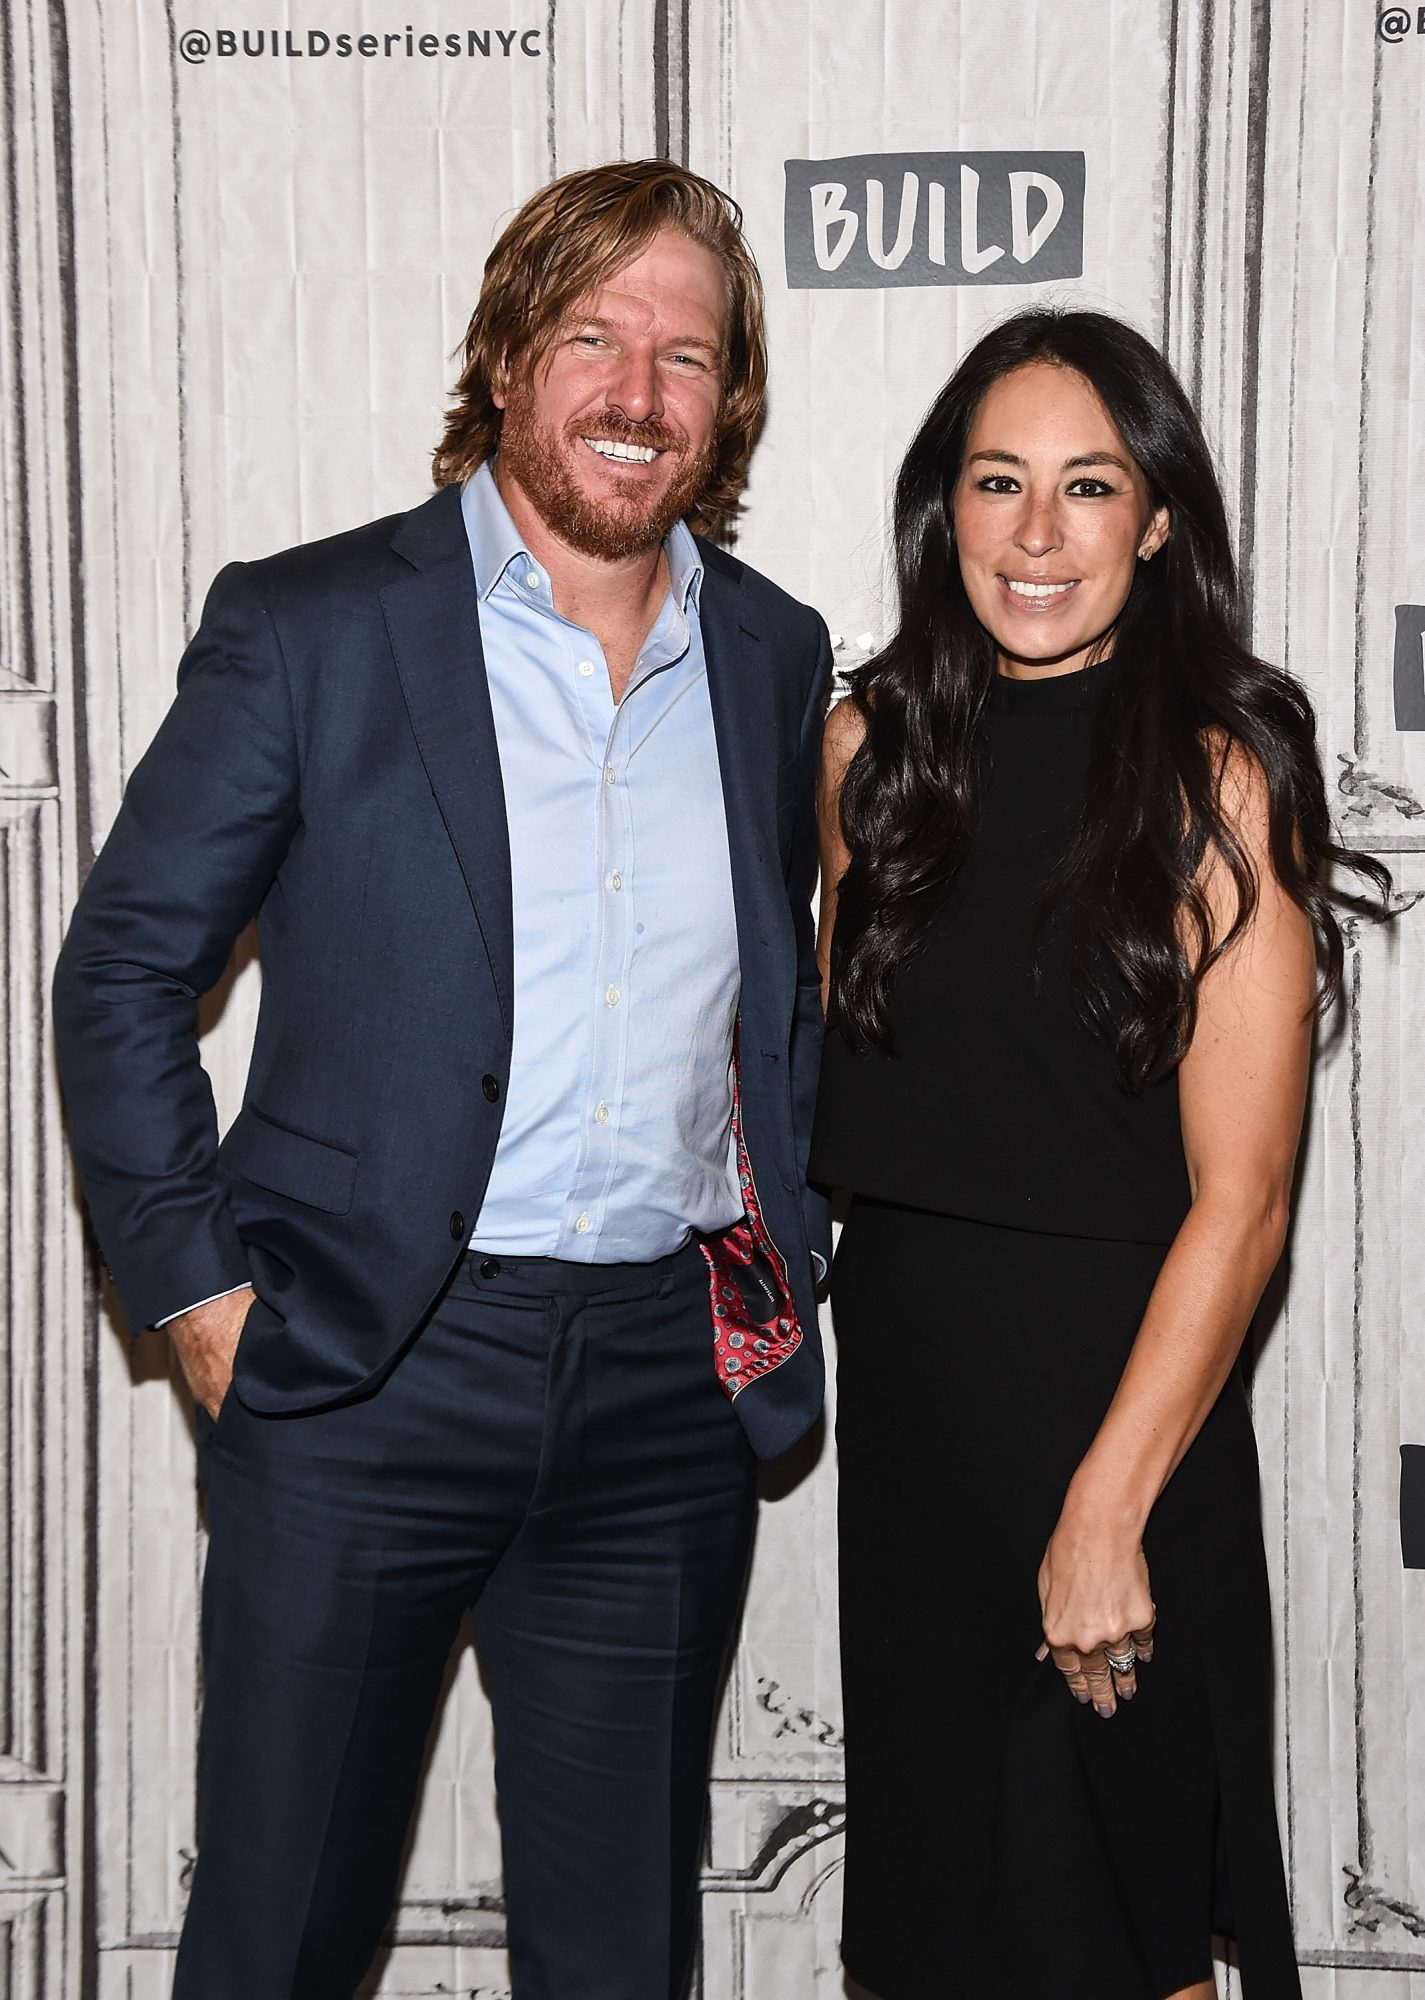 Joanna Gaines Reveals Her Very Diverse Pregnancy Cravings—And How She Is Satisfying Them